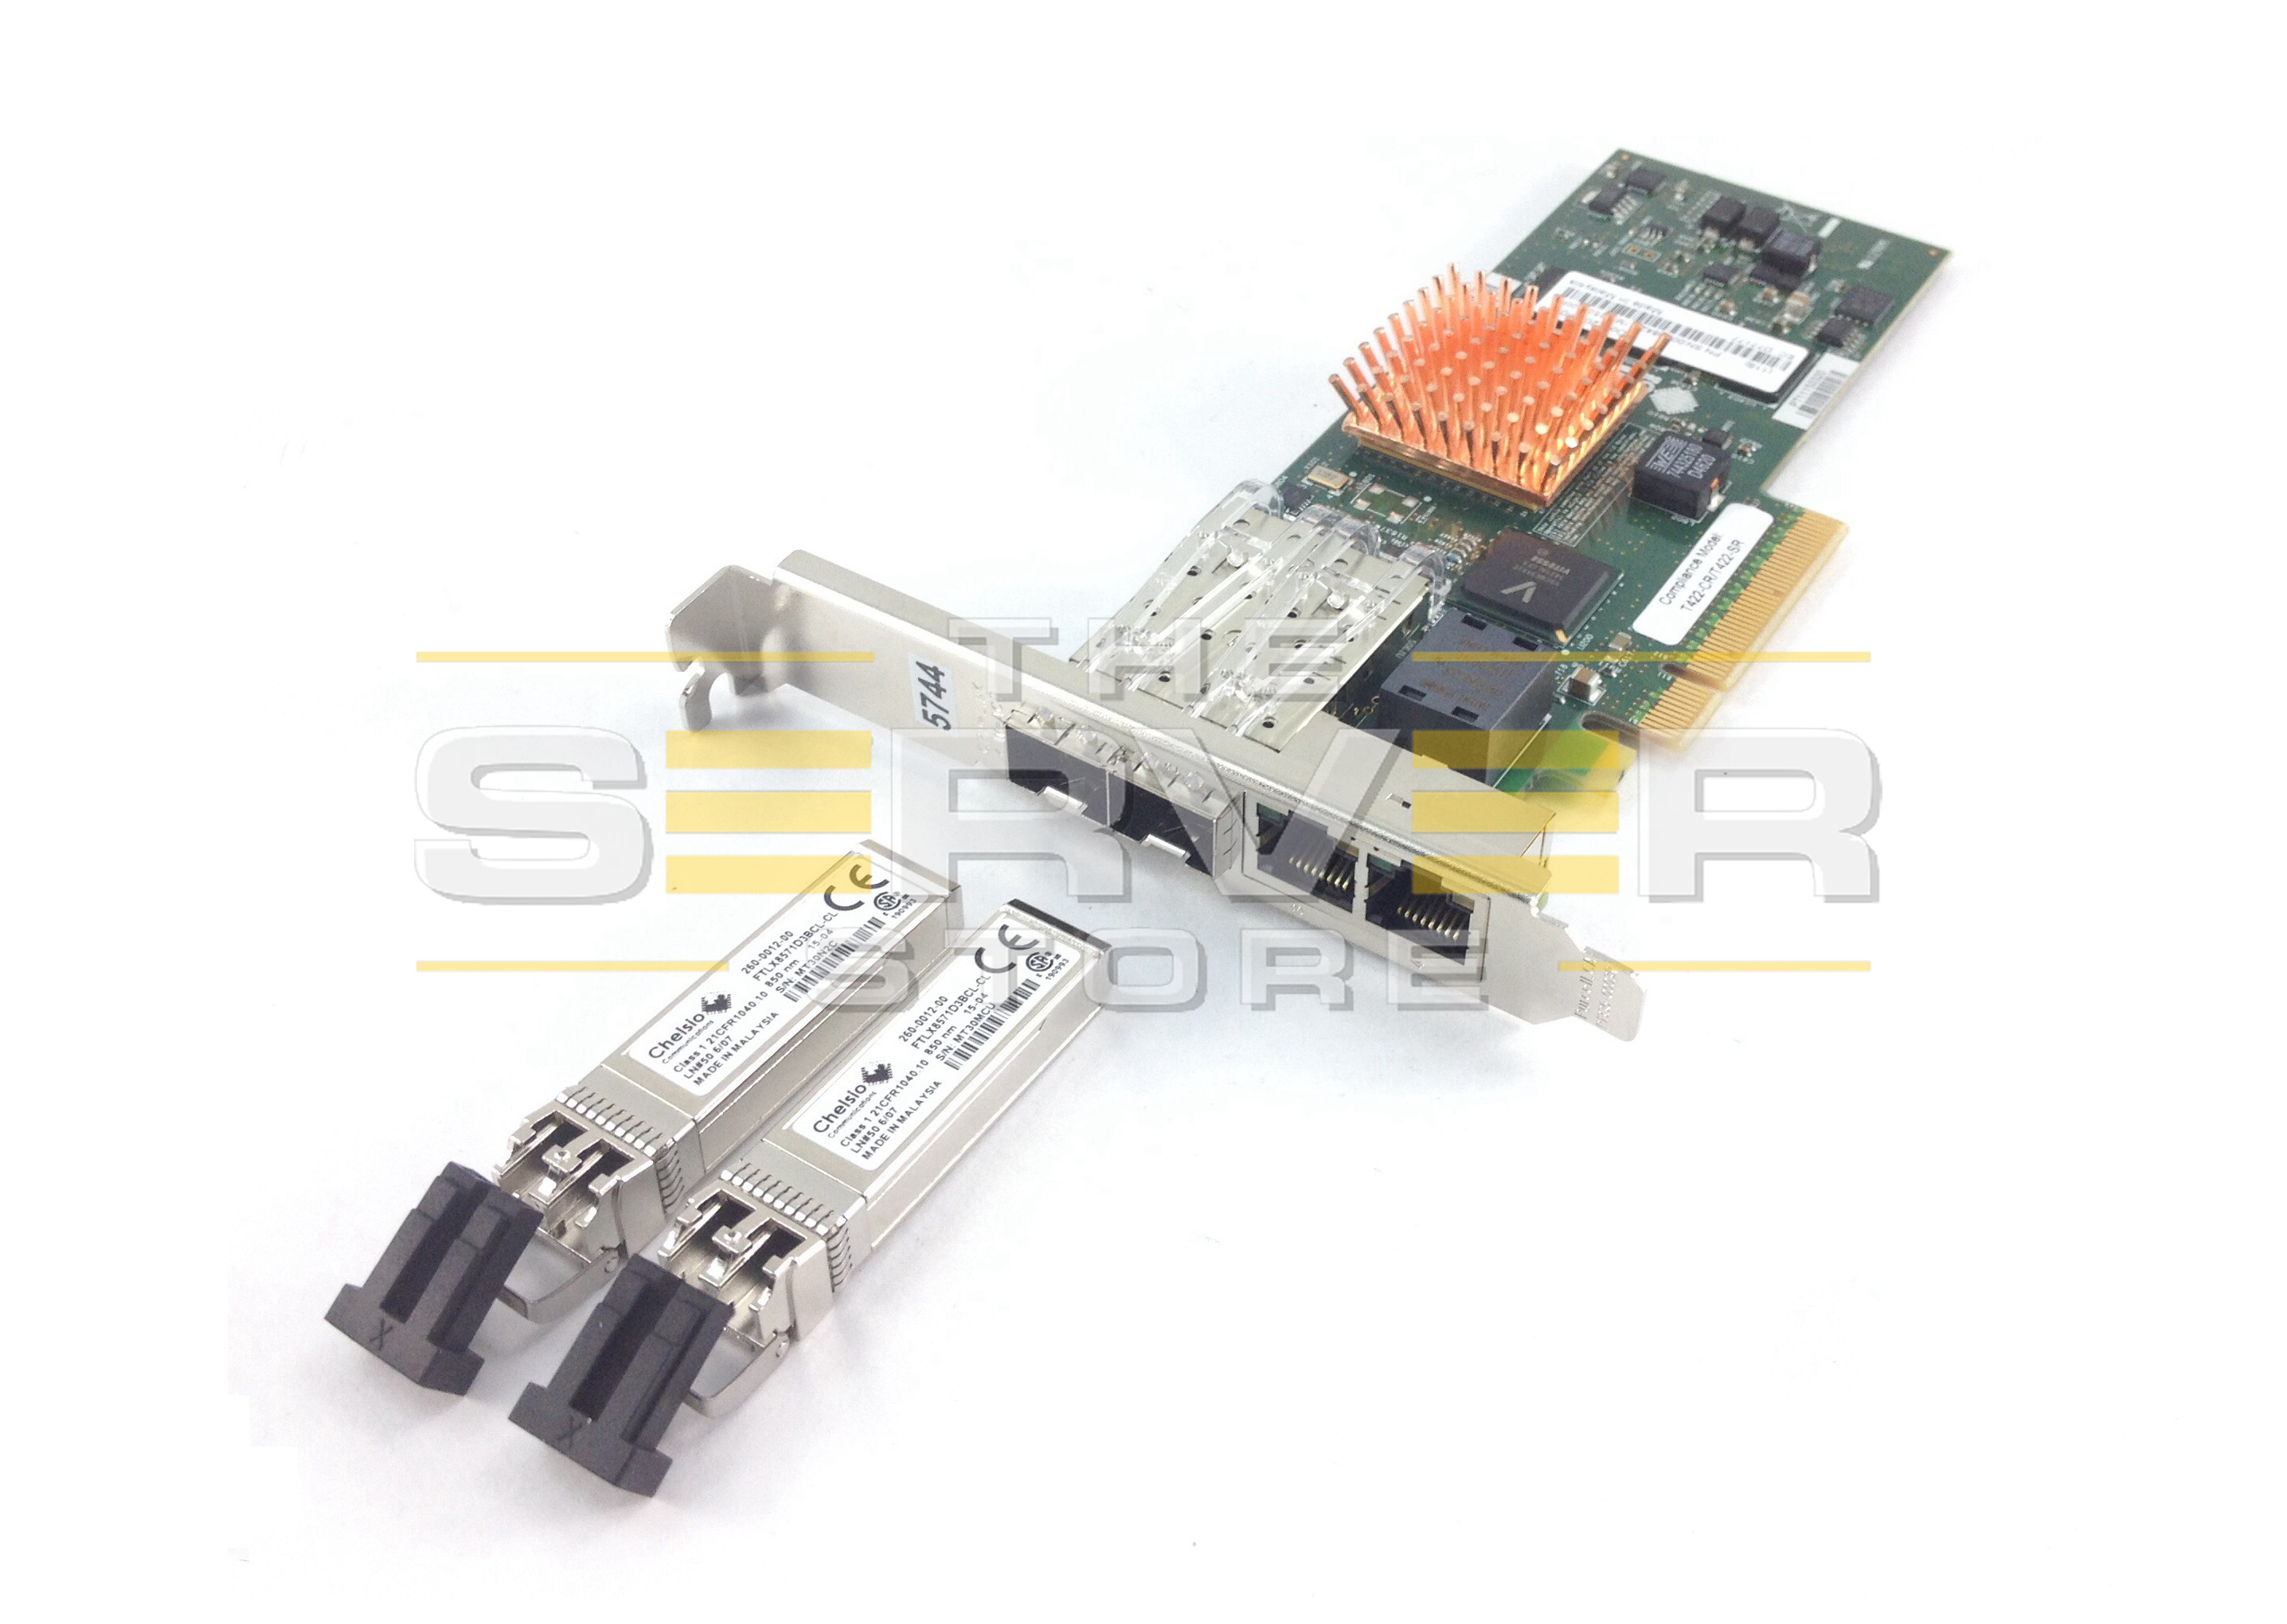 Chelsio High Performance Quad Port Unified Wire Adapter (2x 1GbE / 2x 10GbE), T422-CR